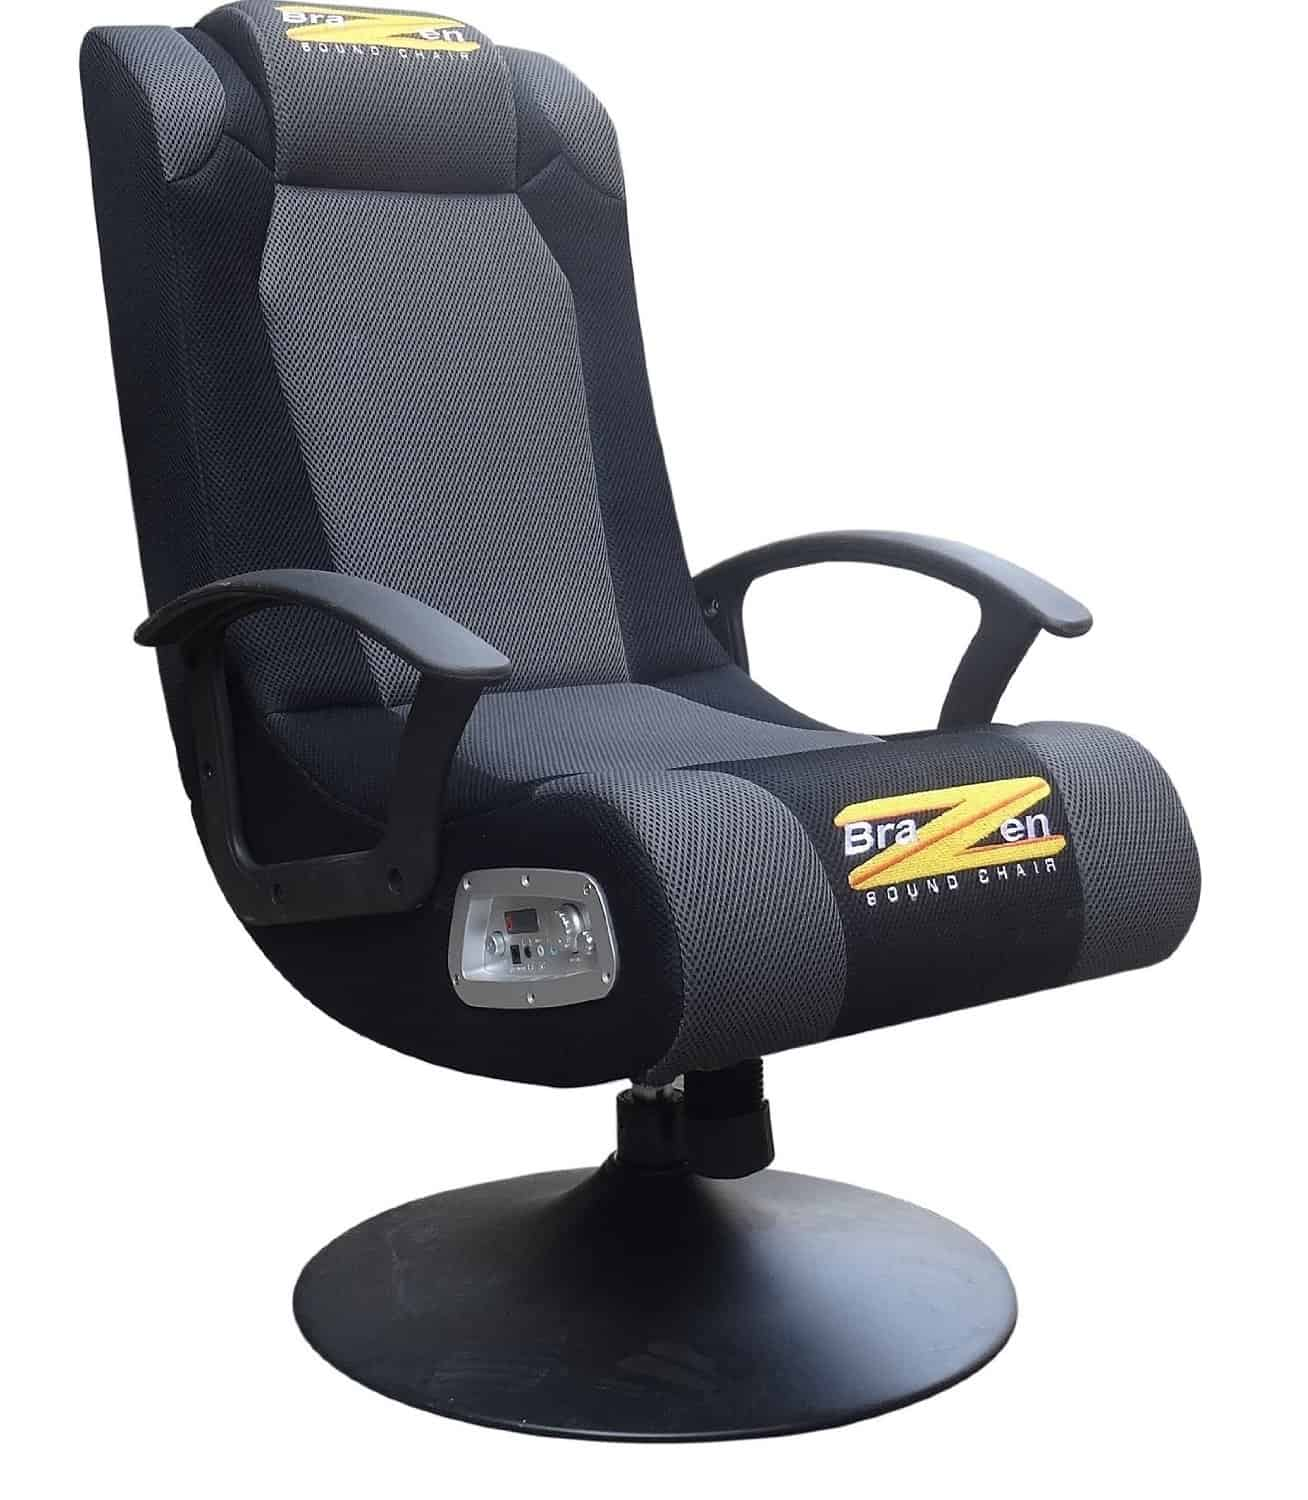 Remarkable Brazen Stag 2 1 Surround Sound Gaming Chair Review Beatyapartments Chair Design Images Beatyapartmentscom